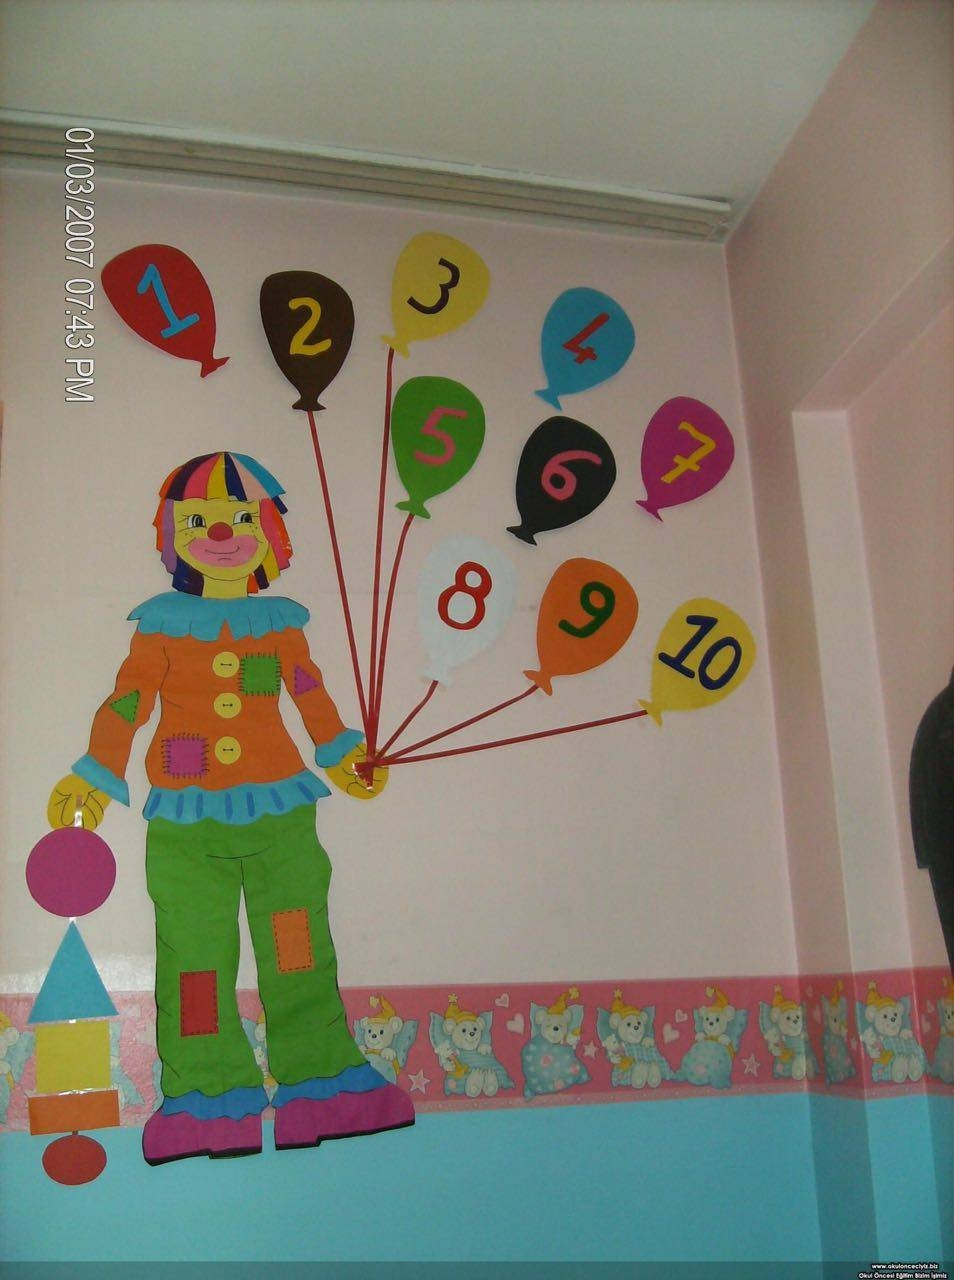 Prescholl Wall Decorations « Funnycrafts Within Current Preschool Wall Decoration (View 22 of 30)